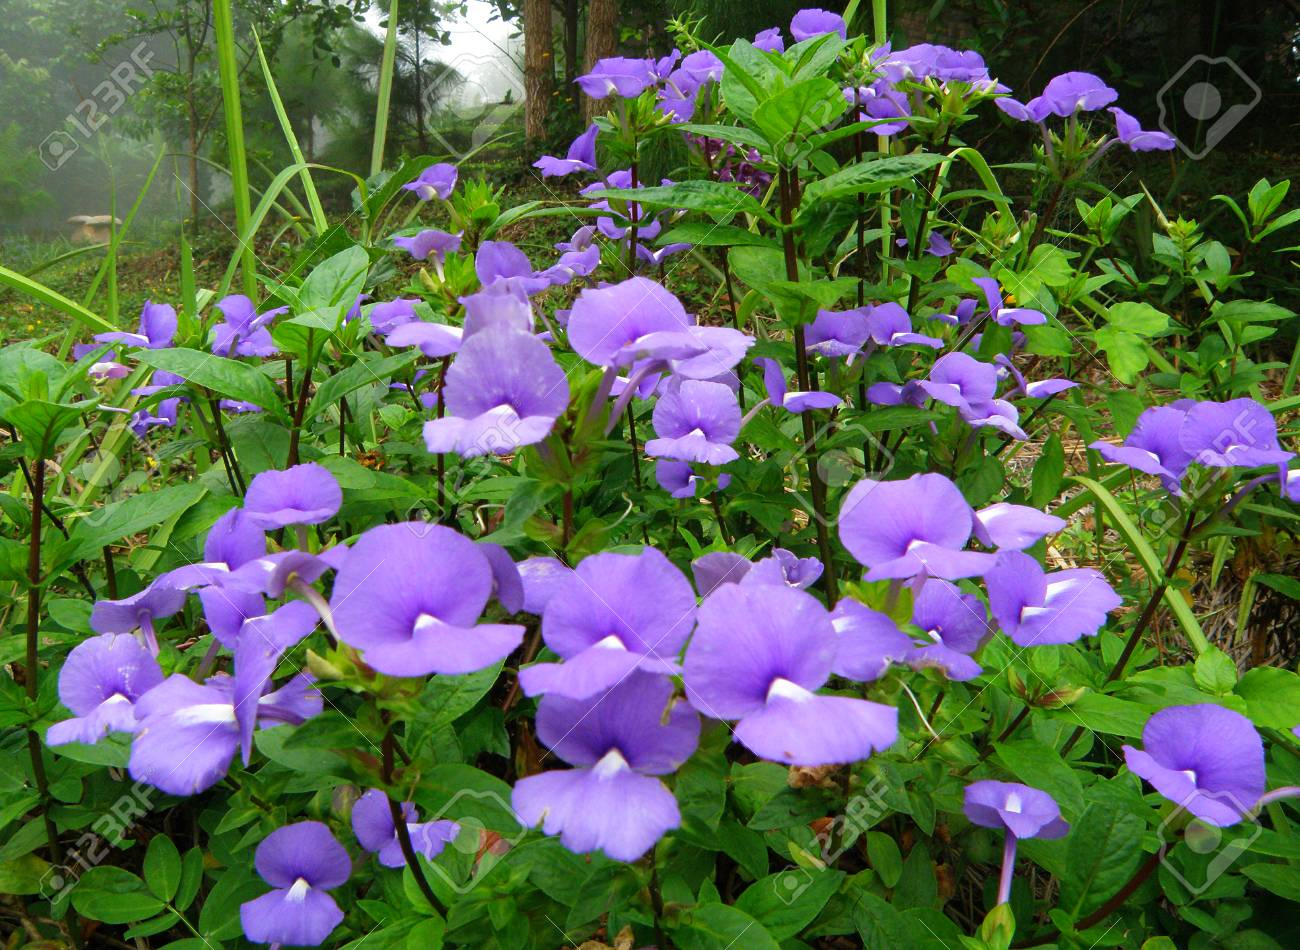 Many Purple Flowers Blooming In The Green Grass Field Stock Photo